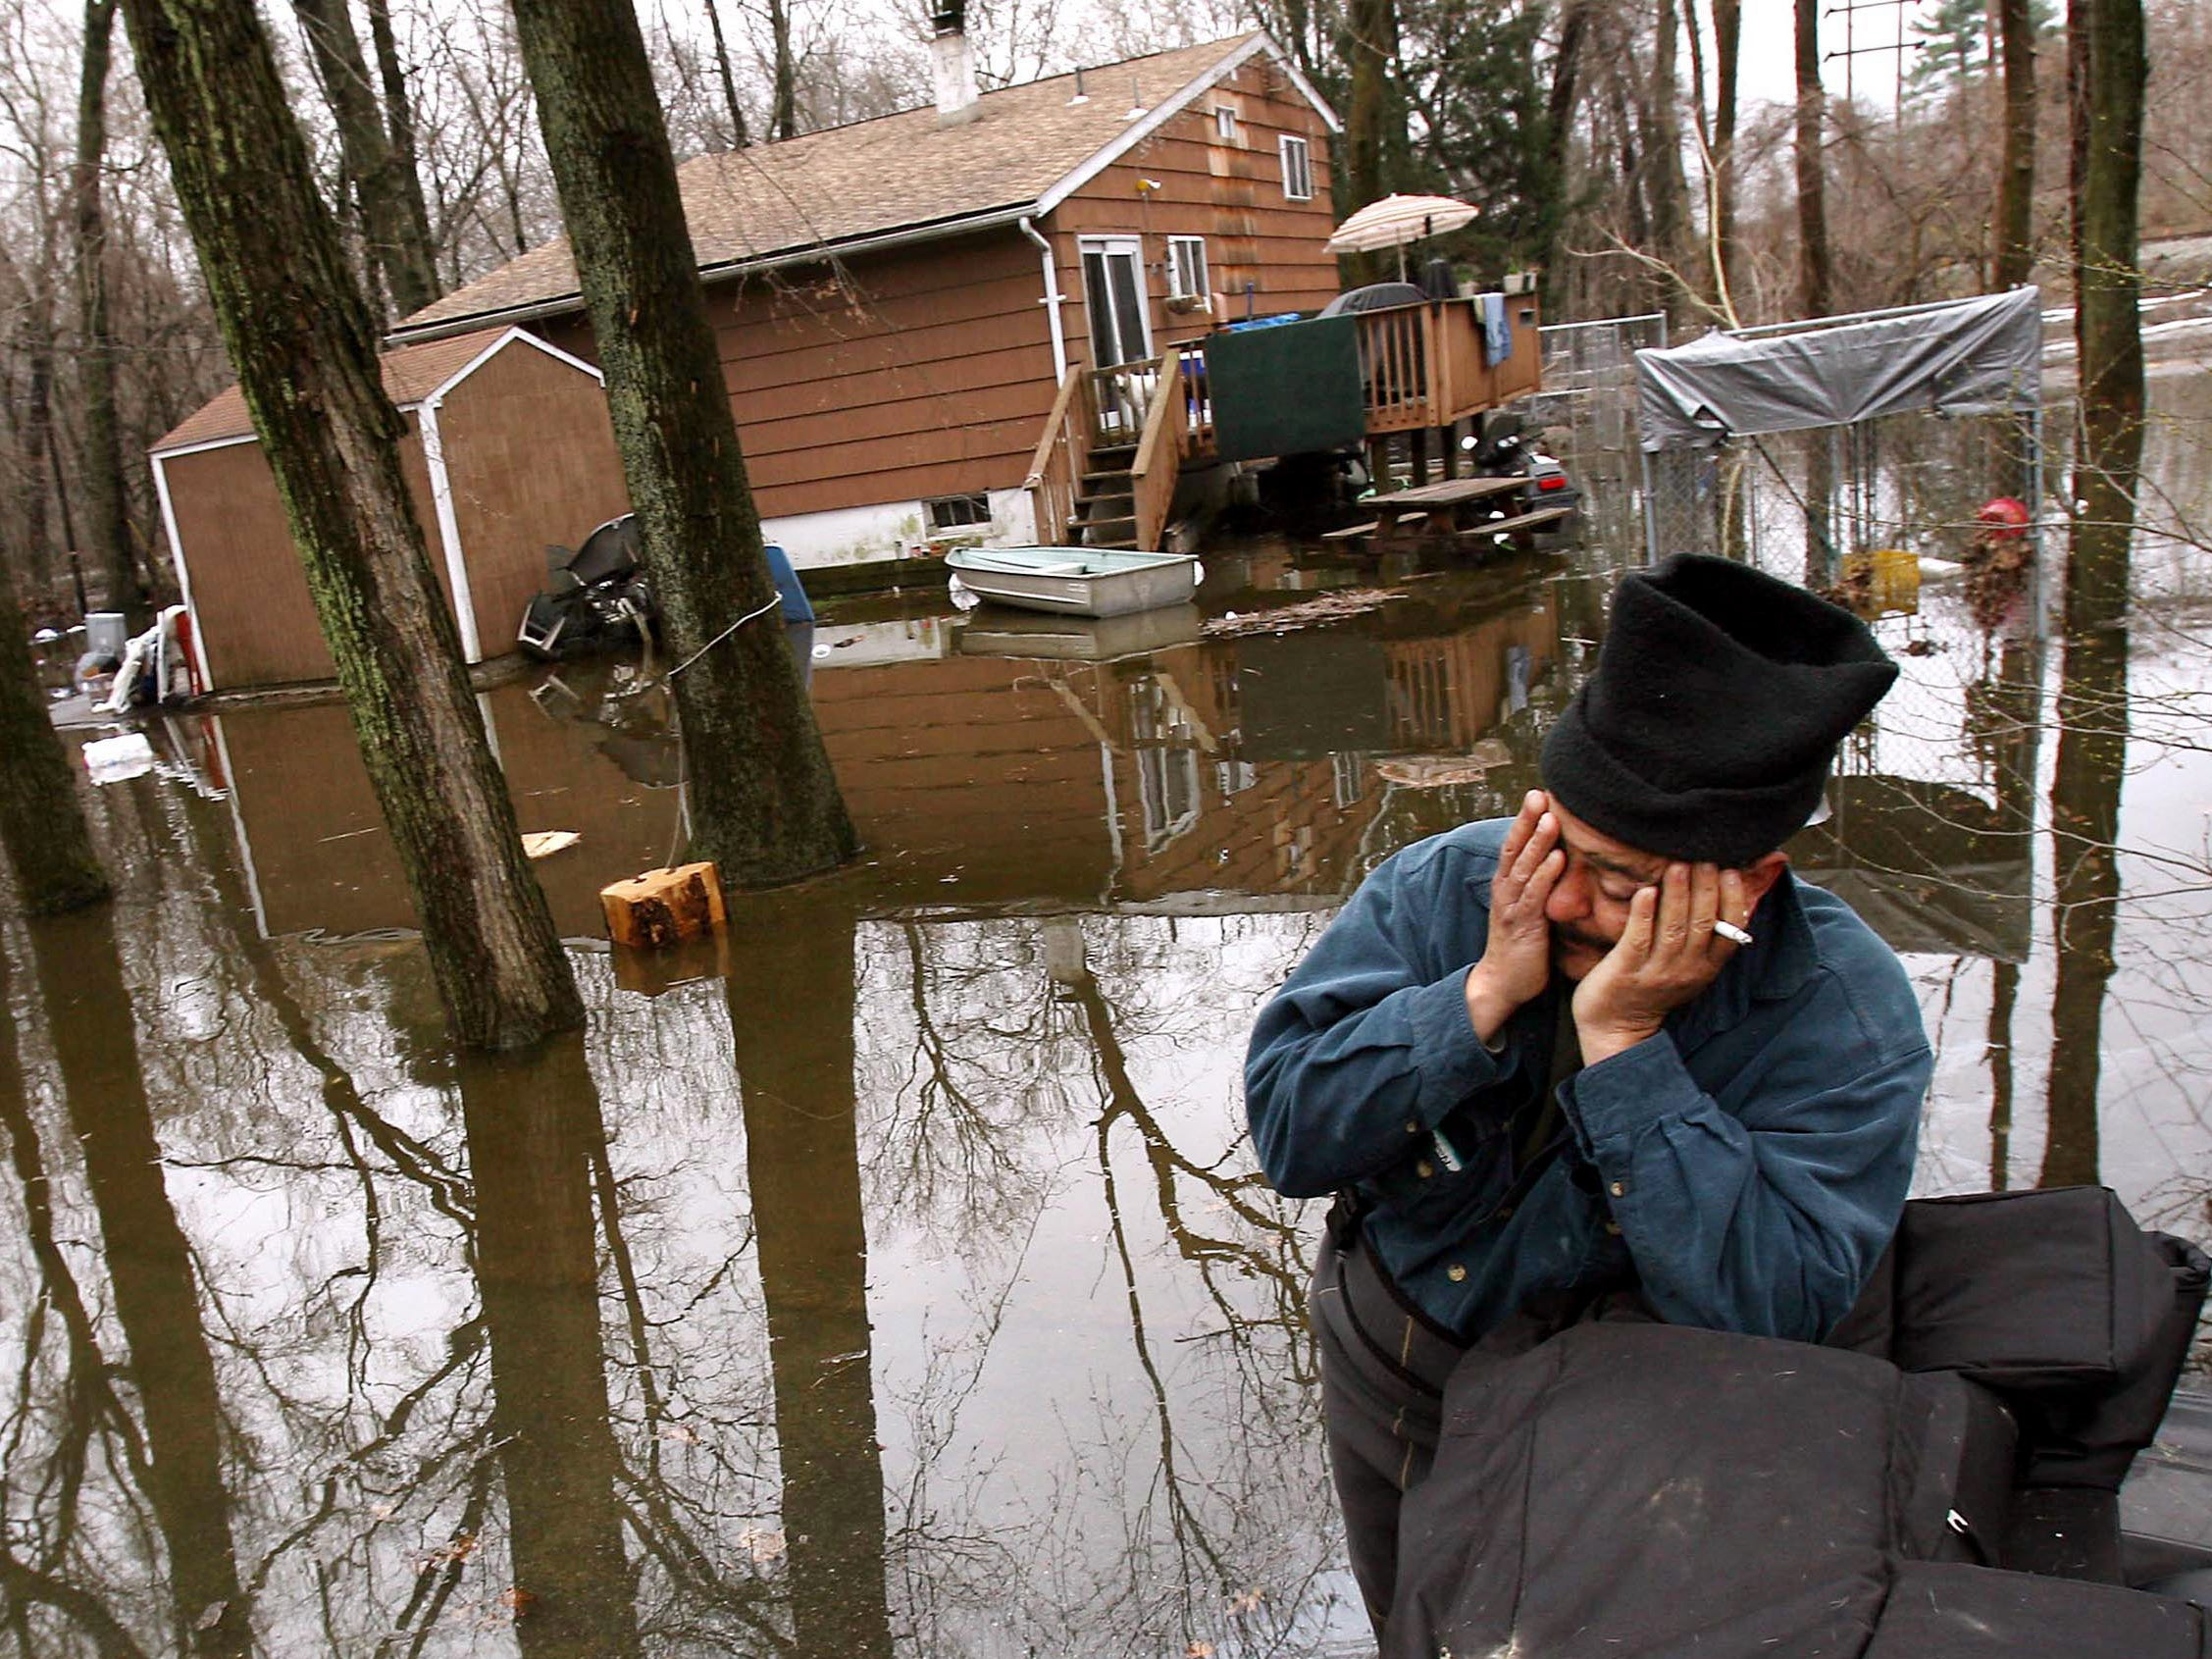 Harrison Road resident Jerry VanDunk shows his frustration after the second time in two weeks, they found themselves underwater after up to two inches of rain fell over the area again flooding the area around the Pequannock River. March 23, 2010 Pompton Plains, NJ